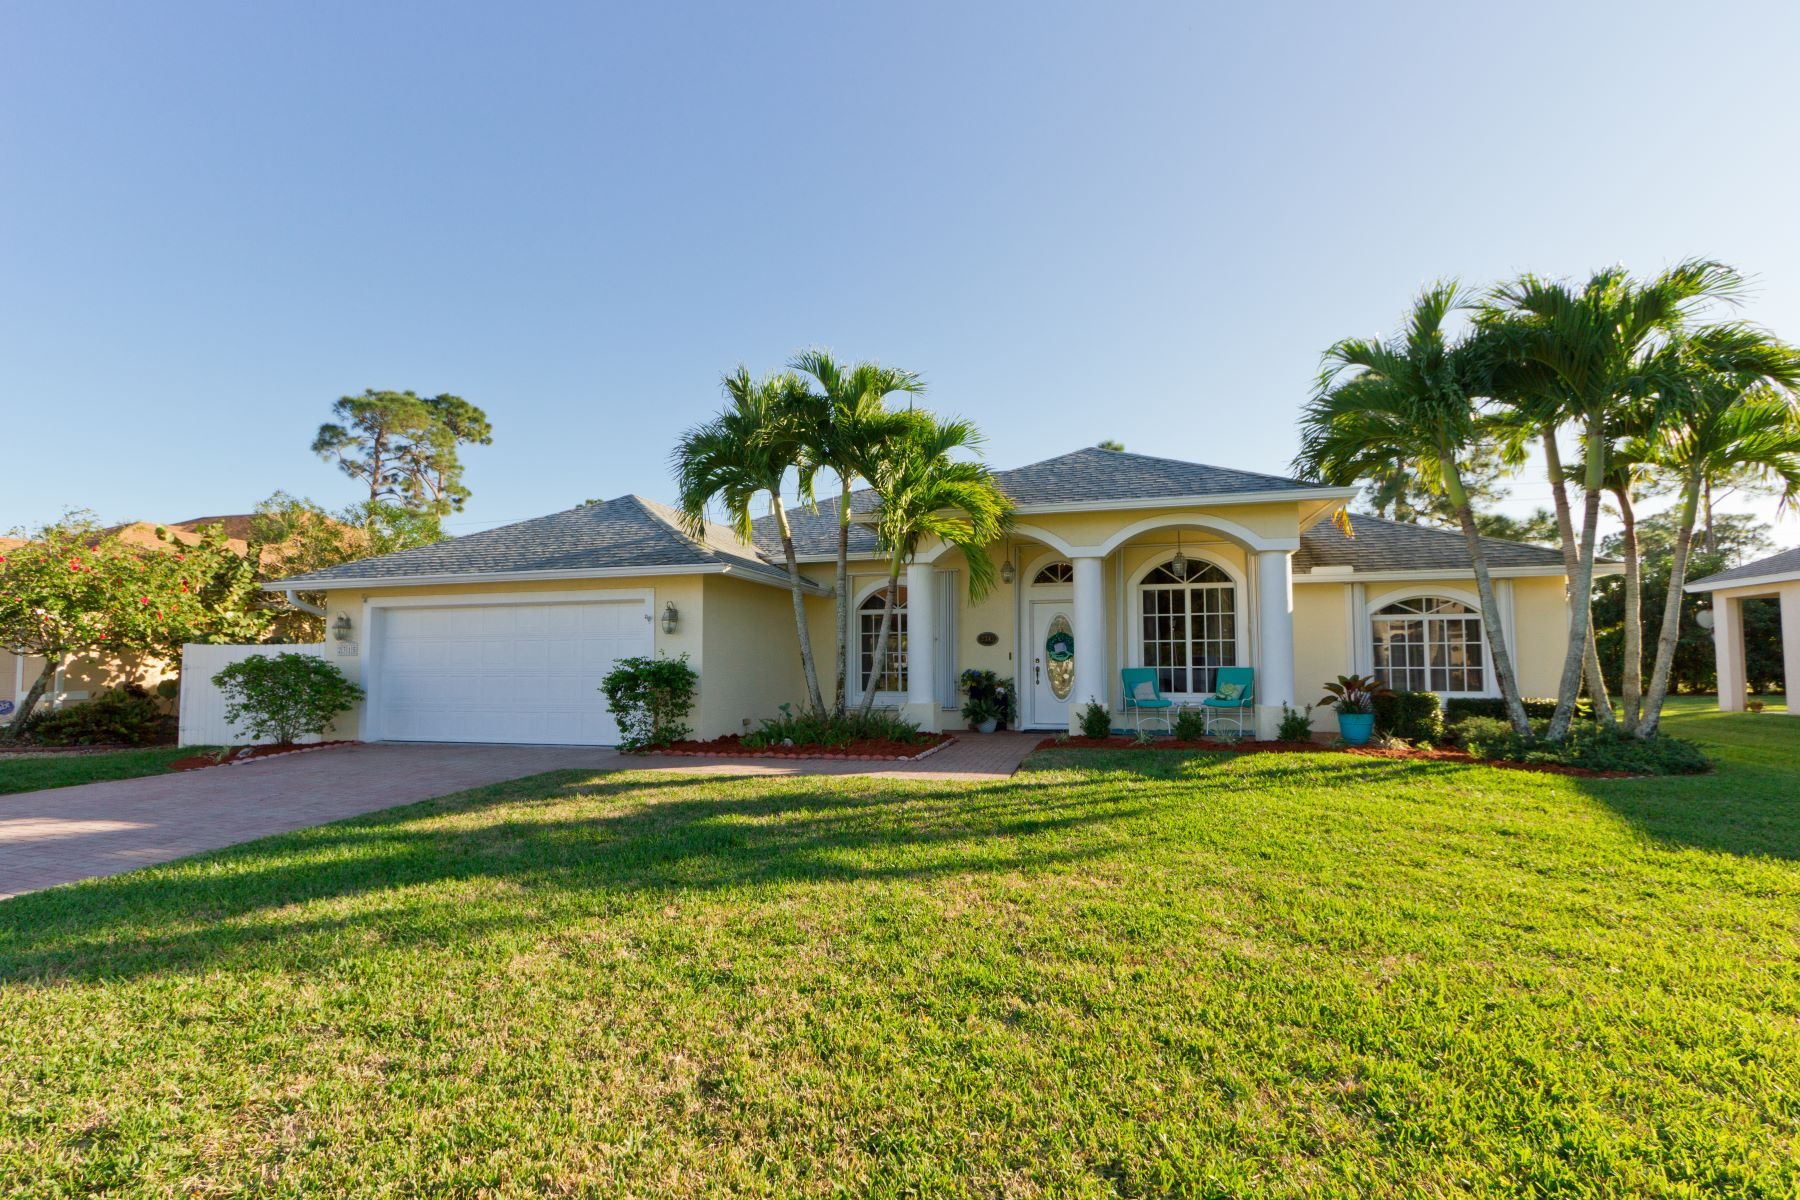 Single Family Homes for Sale at Beachy Chic Renovated Pool Paradise! 2315 4th Lane Sw Vero Beach, Florida 32962 United States